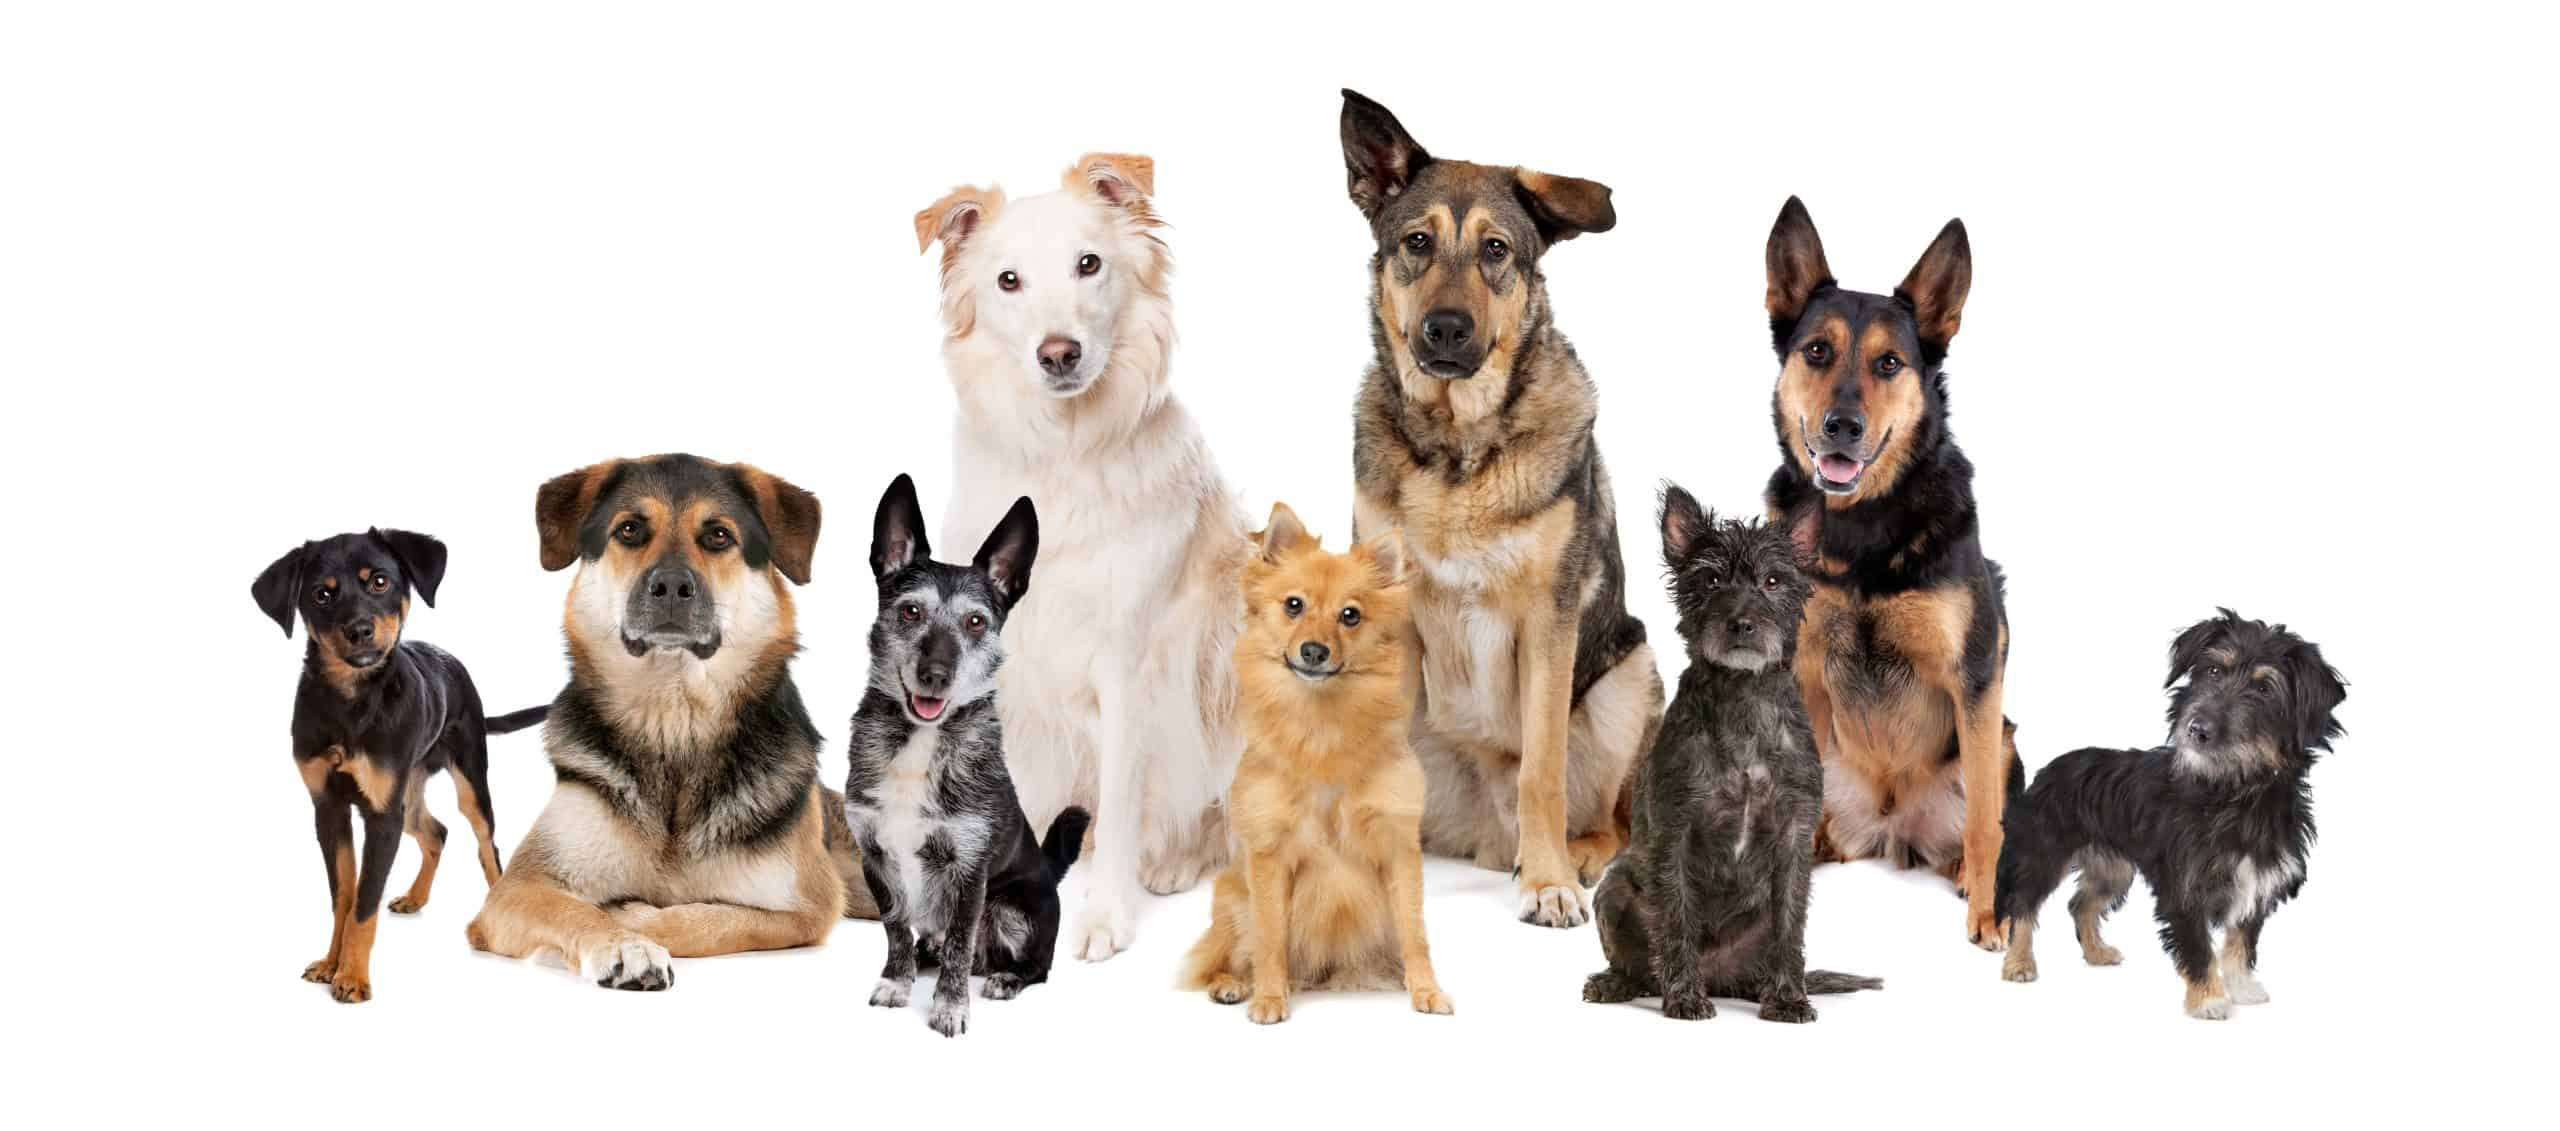 Collection of dog breeds. DNA testing for dogs can help you learn basic information about your dog's breed and whether he's a purebred.